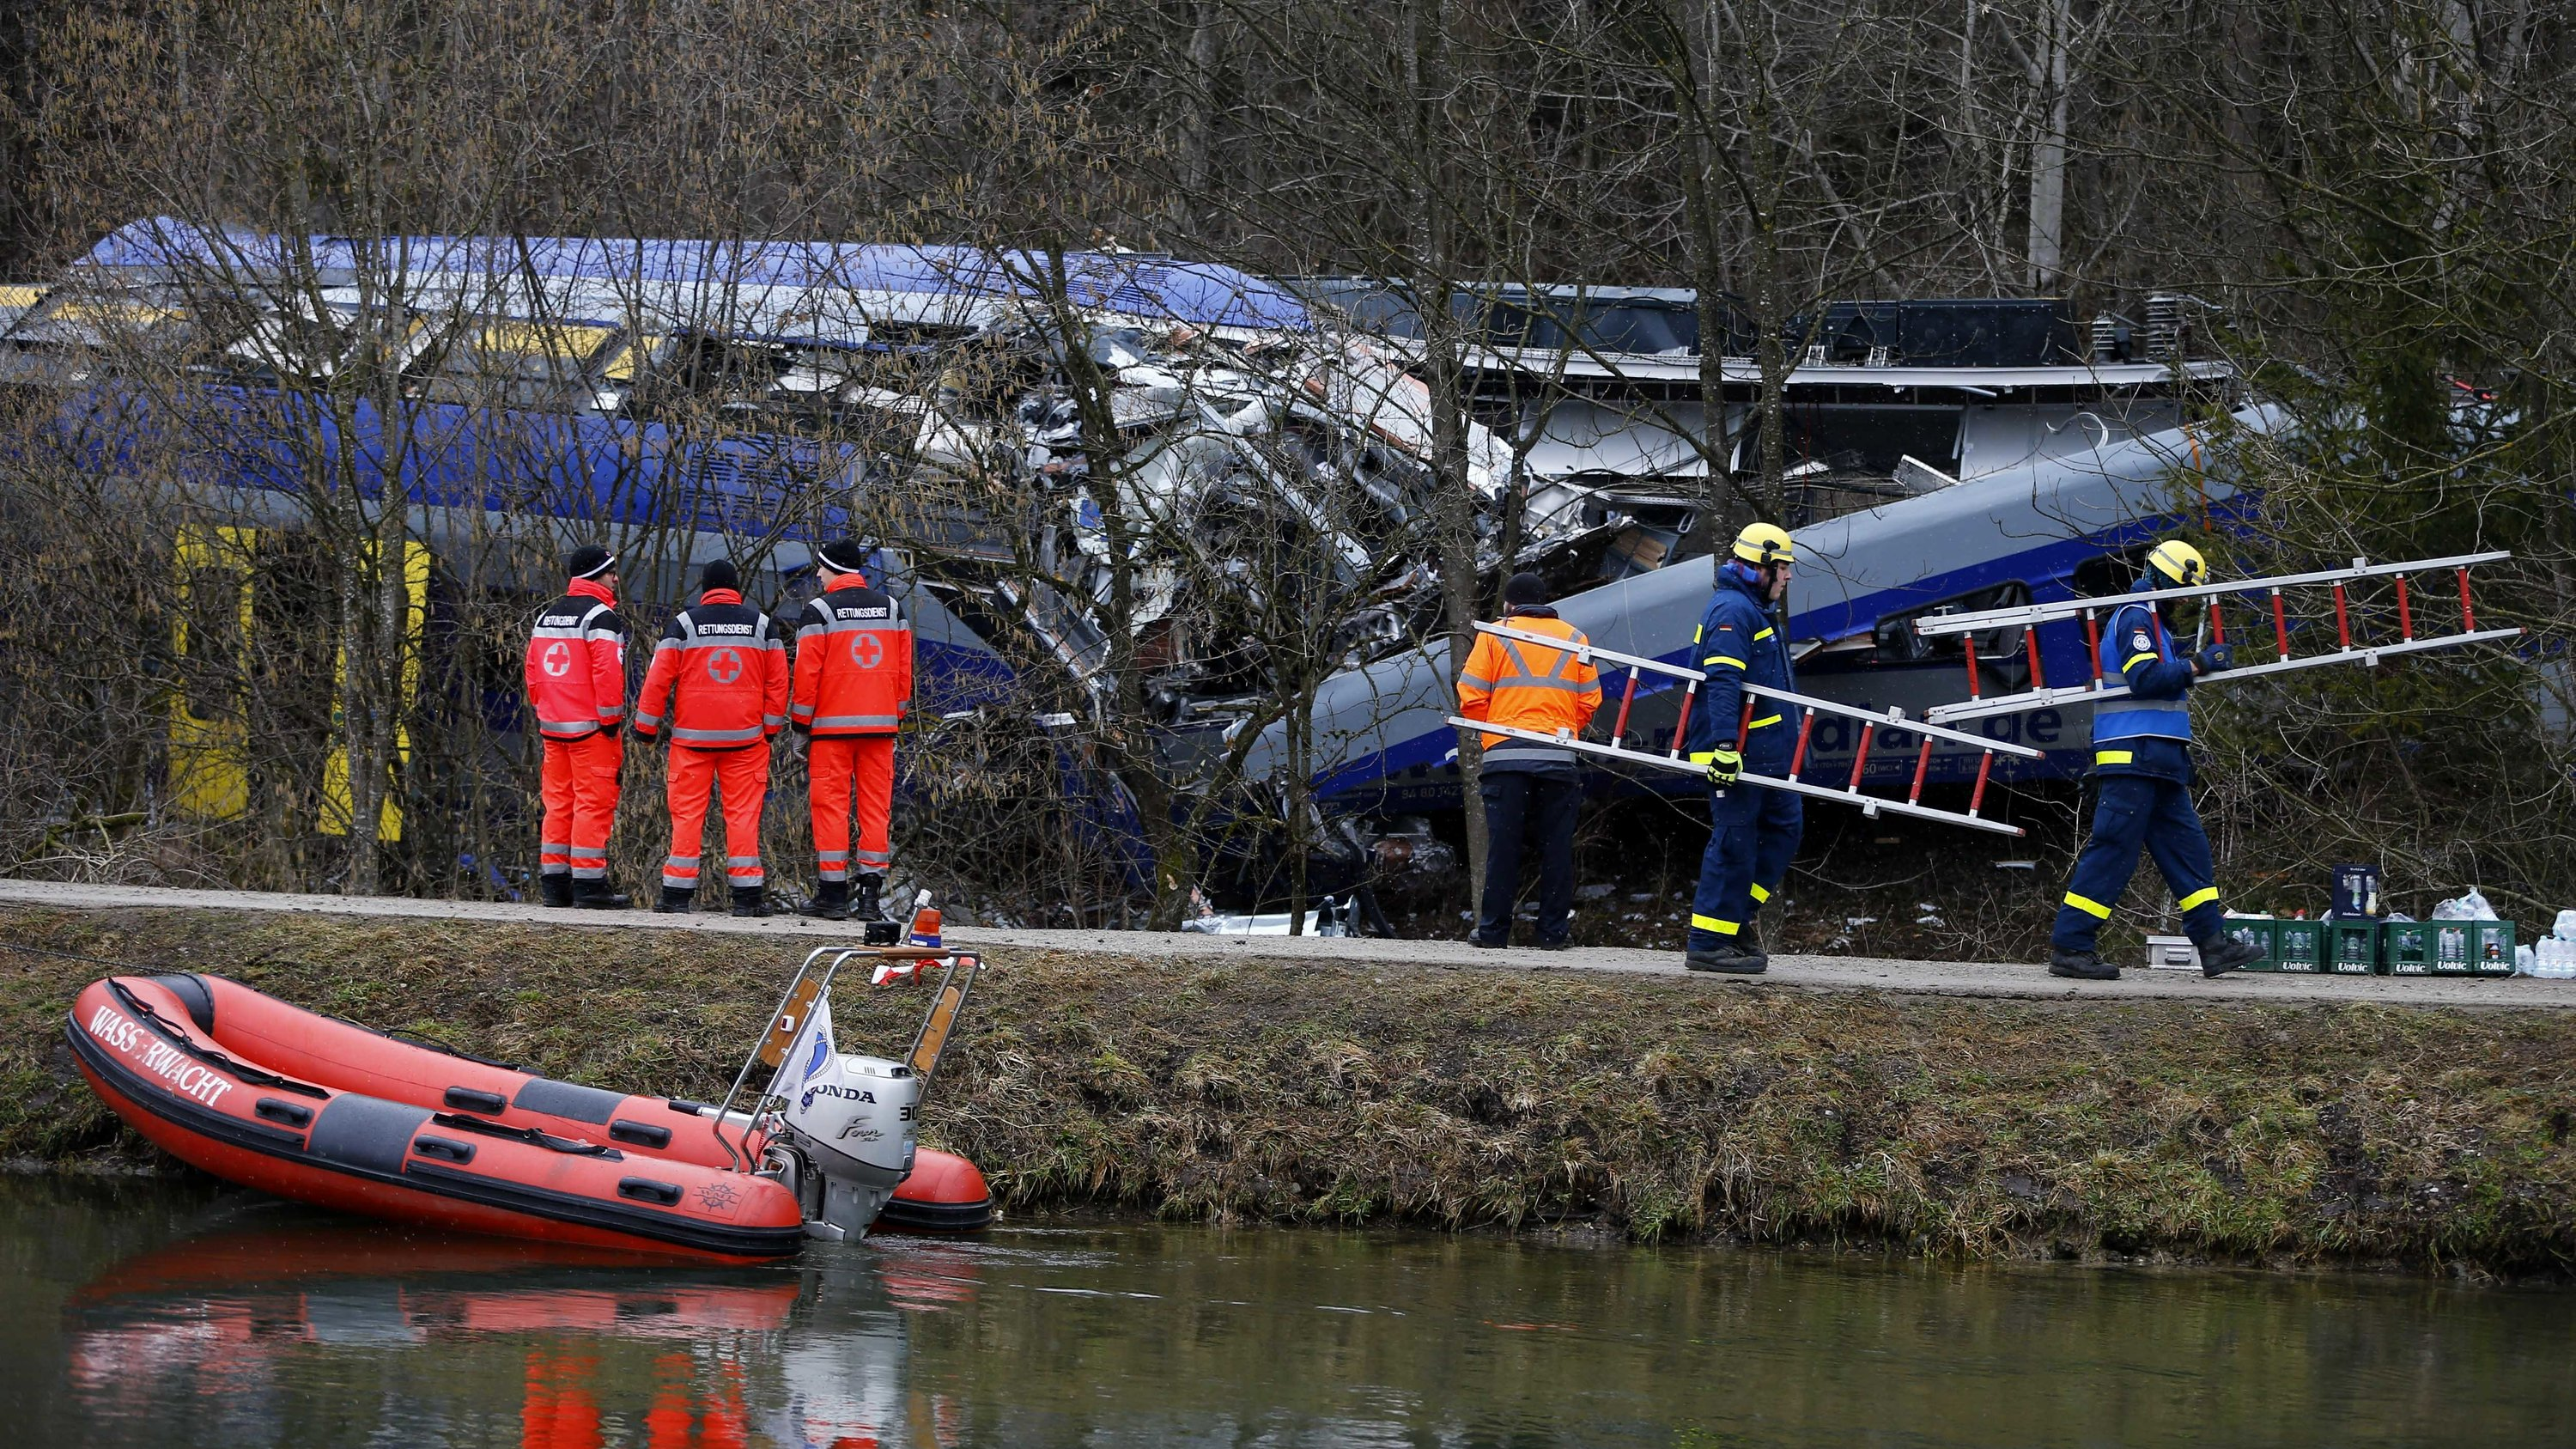 Prosecutors want 4 years for train dispatcher in fatal crash